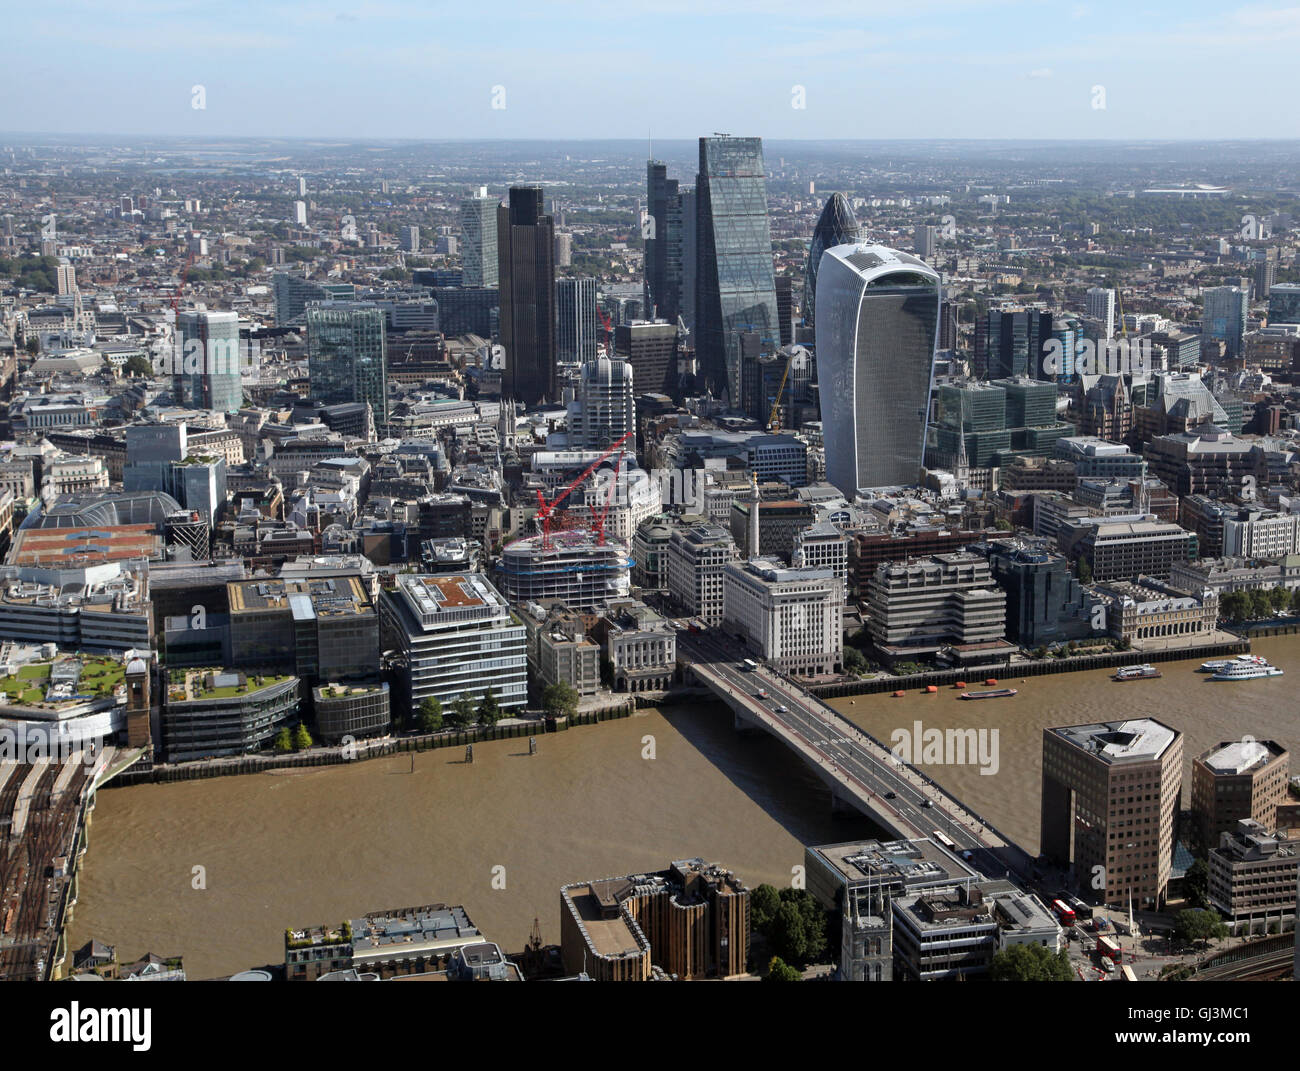 aerial view of the City of London skyline with Gherkin, Walkie Talkie and Cheese Grater buildings, UK - Stock Image